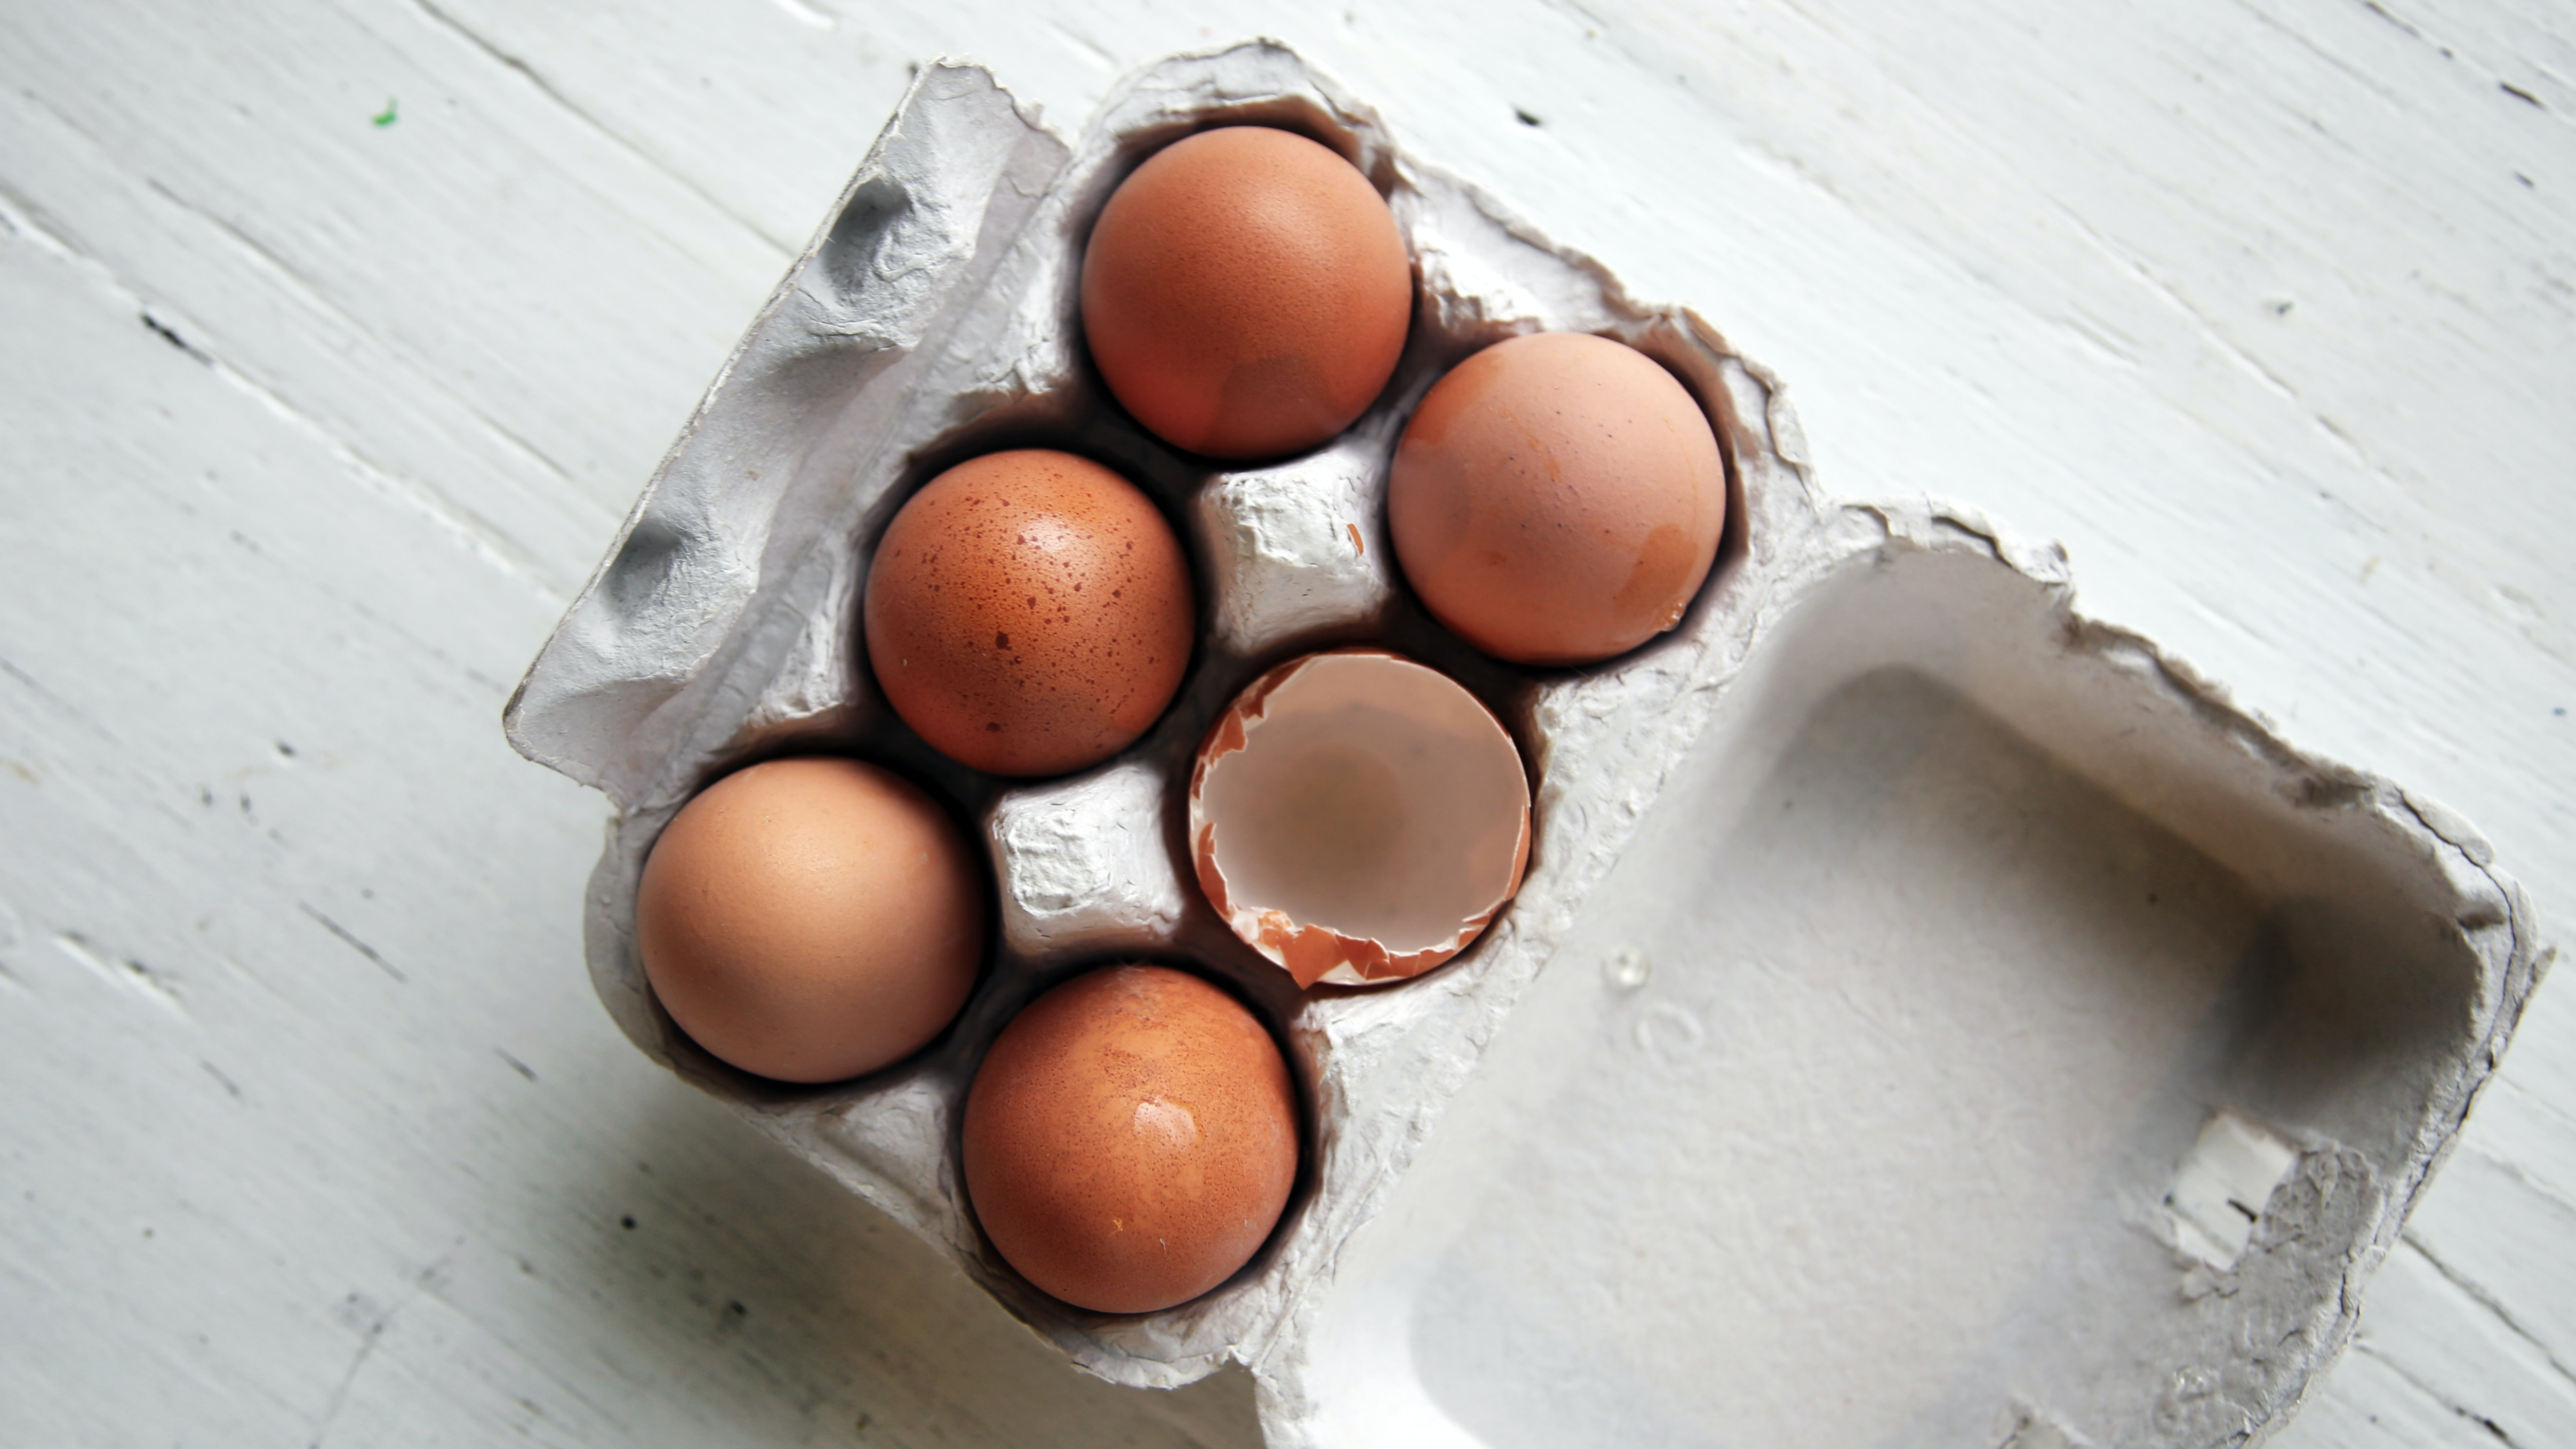 Half dozen fresh brown eggs in a carton